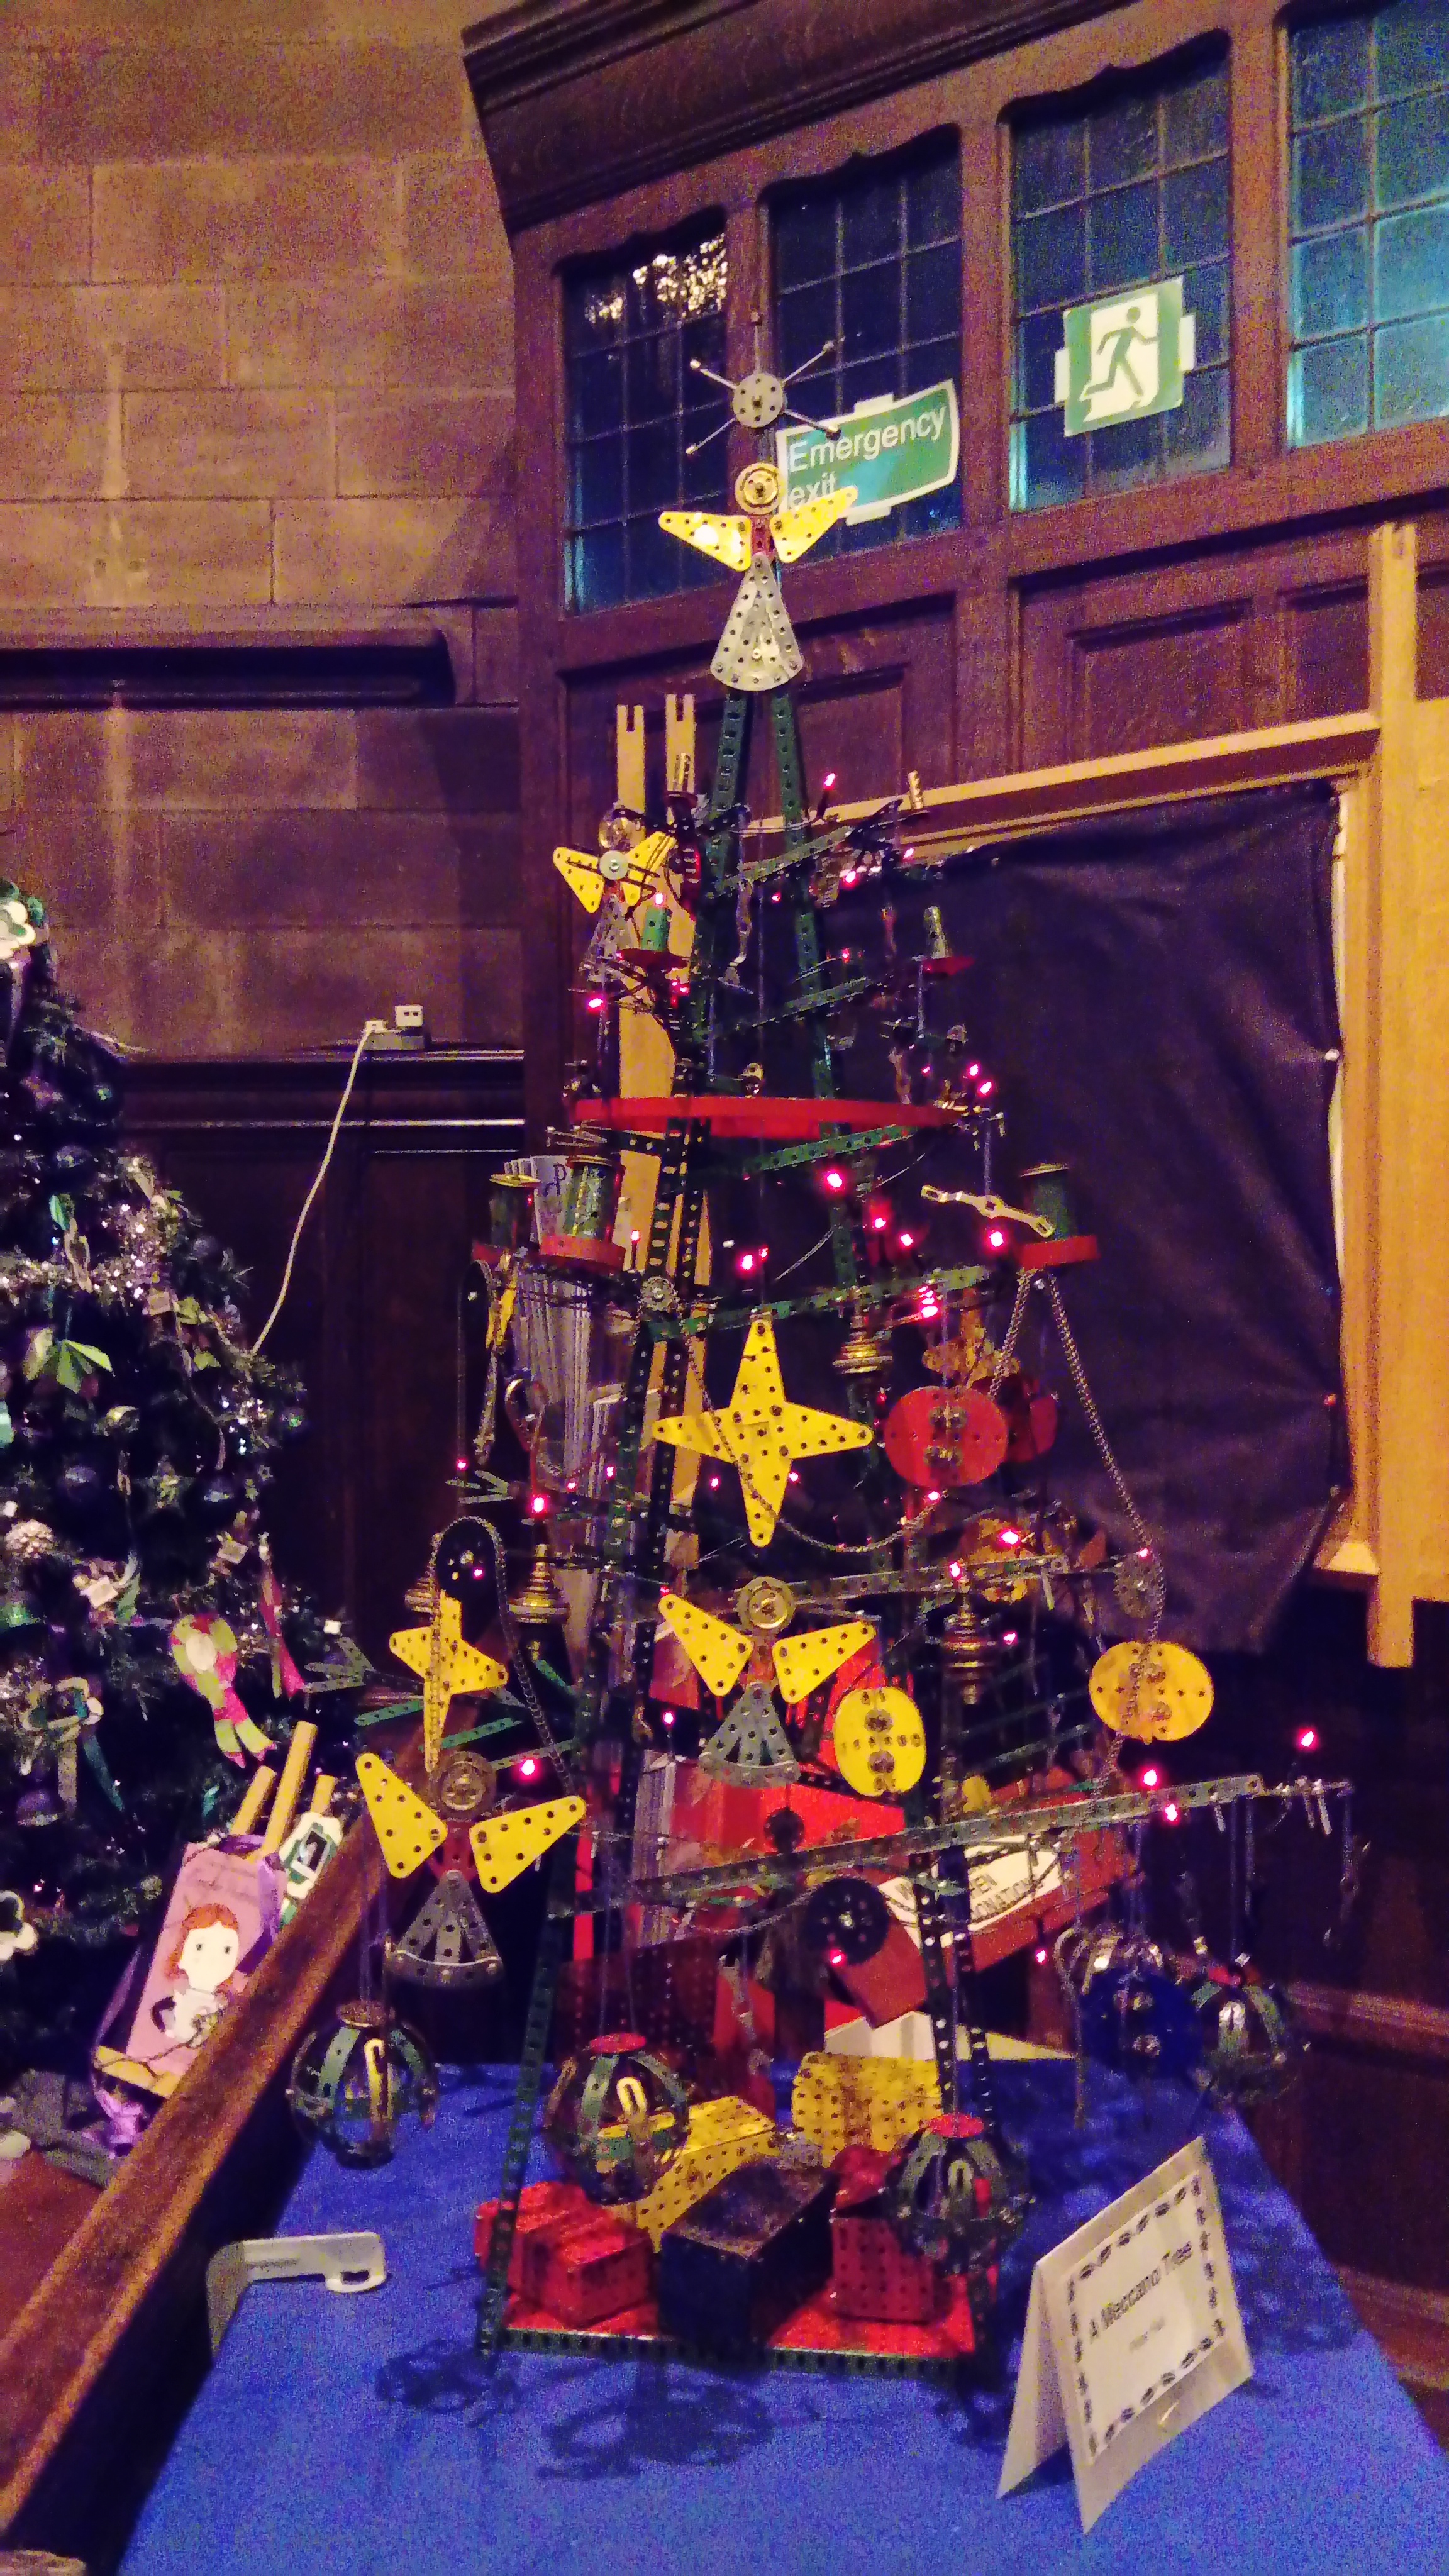 12 Christmas Tree.Christmas Tree Festival 2019 St George And St Gabriel